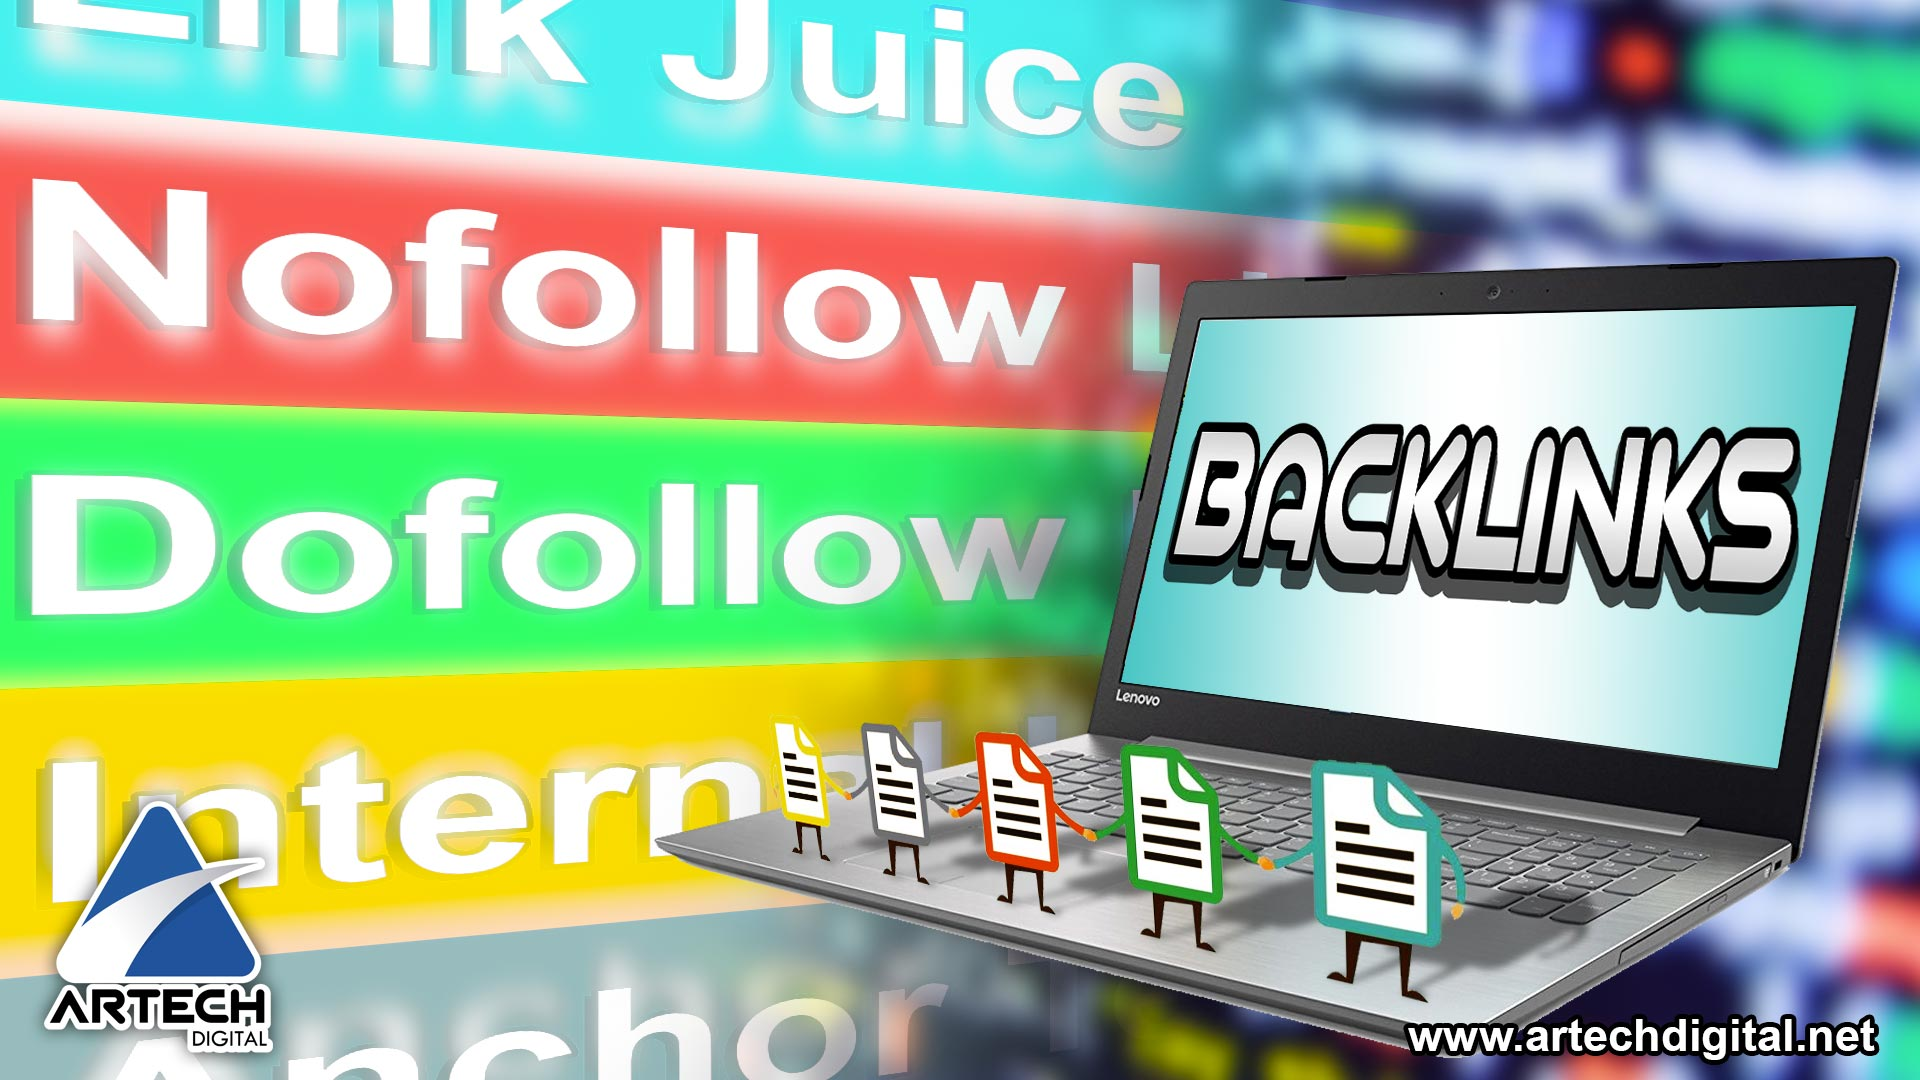 backlinks - posicionamiento seo - artech digital